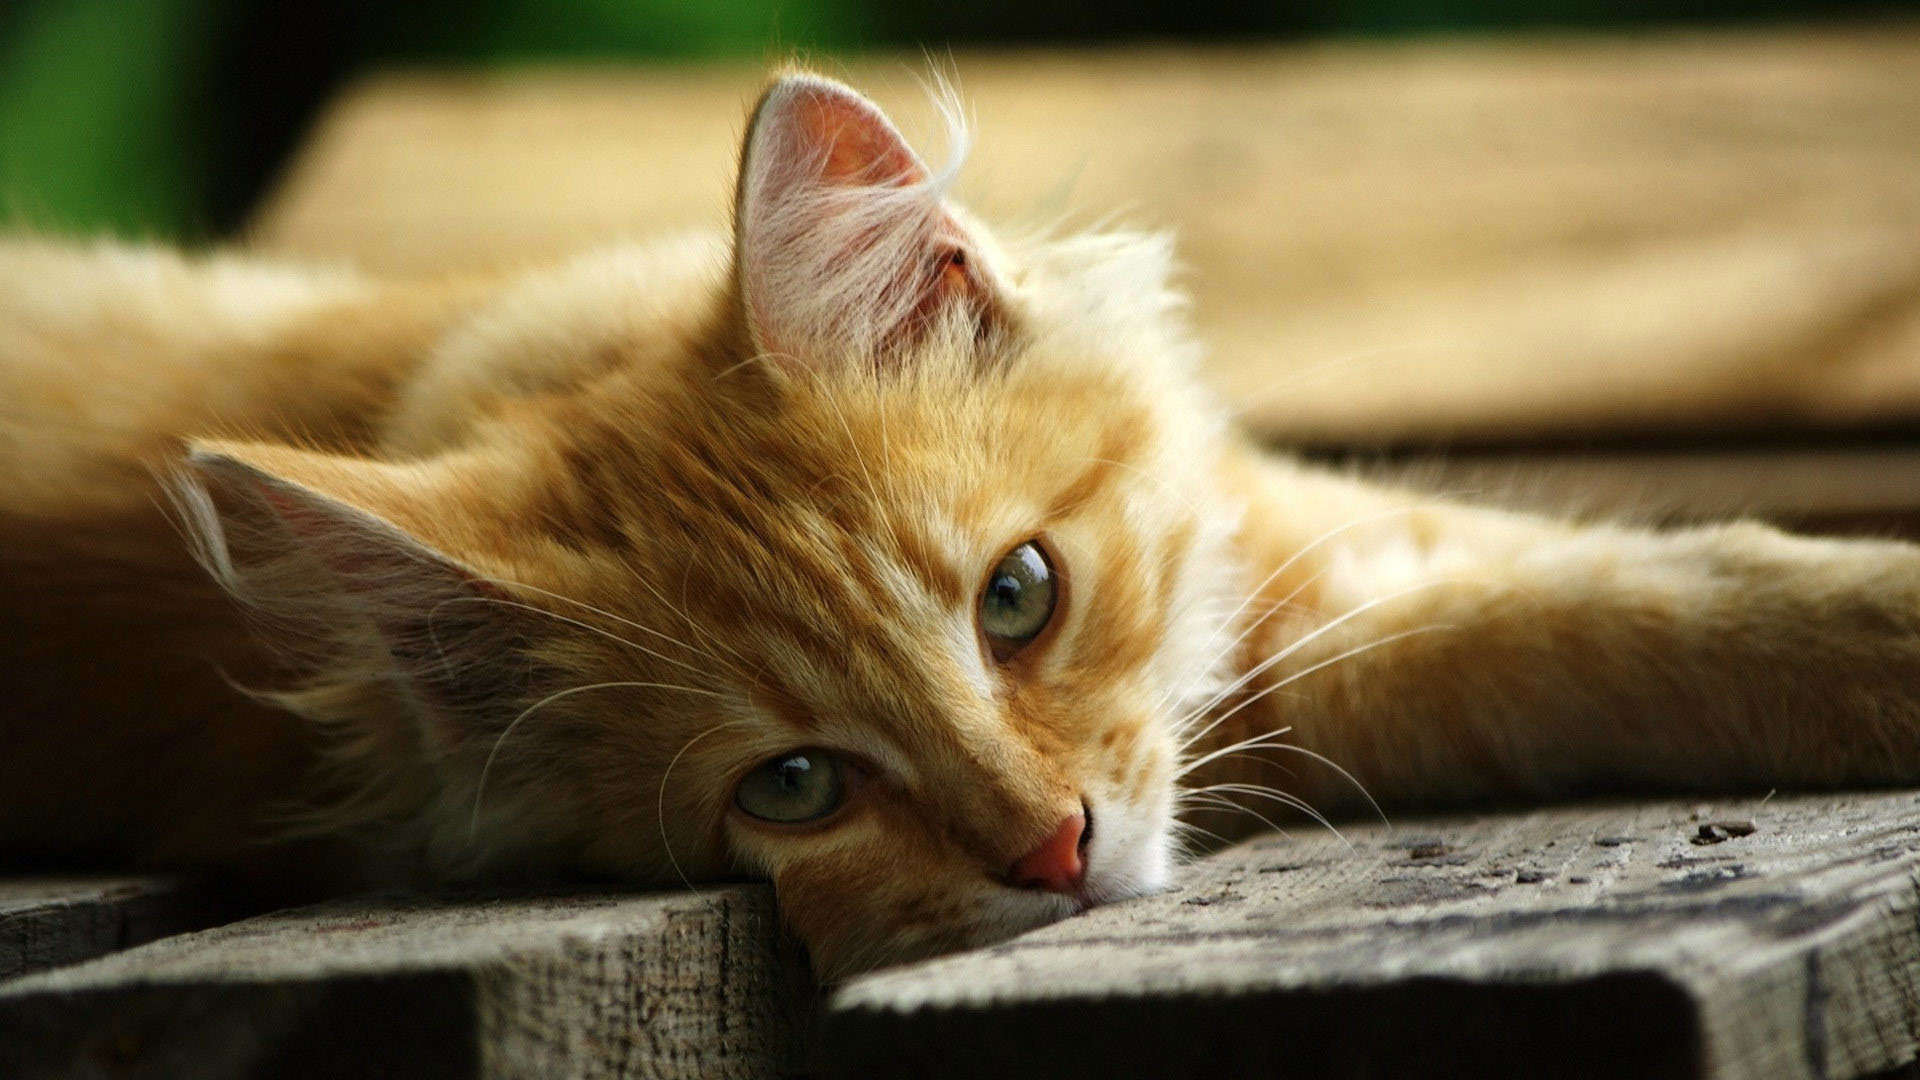 Cat HD Wallpapers 1080p (64+ images) Hd Wallpaper 1920 X 1080 Kittens